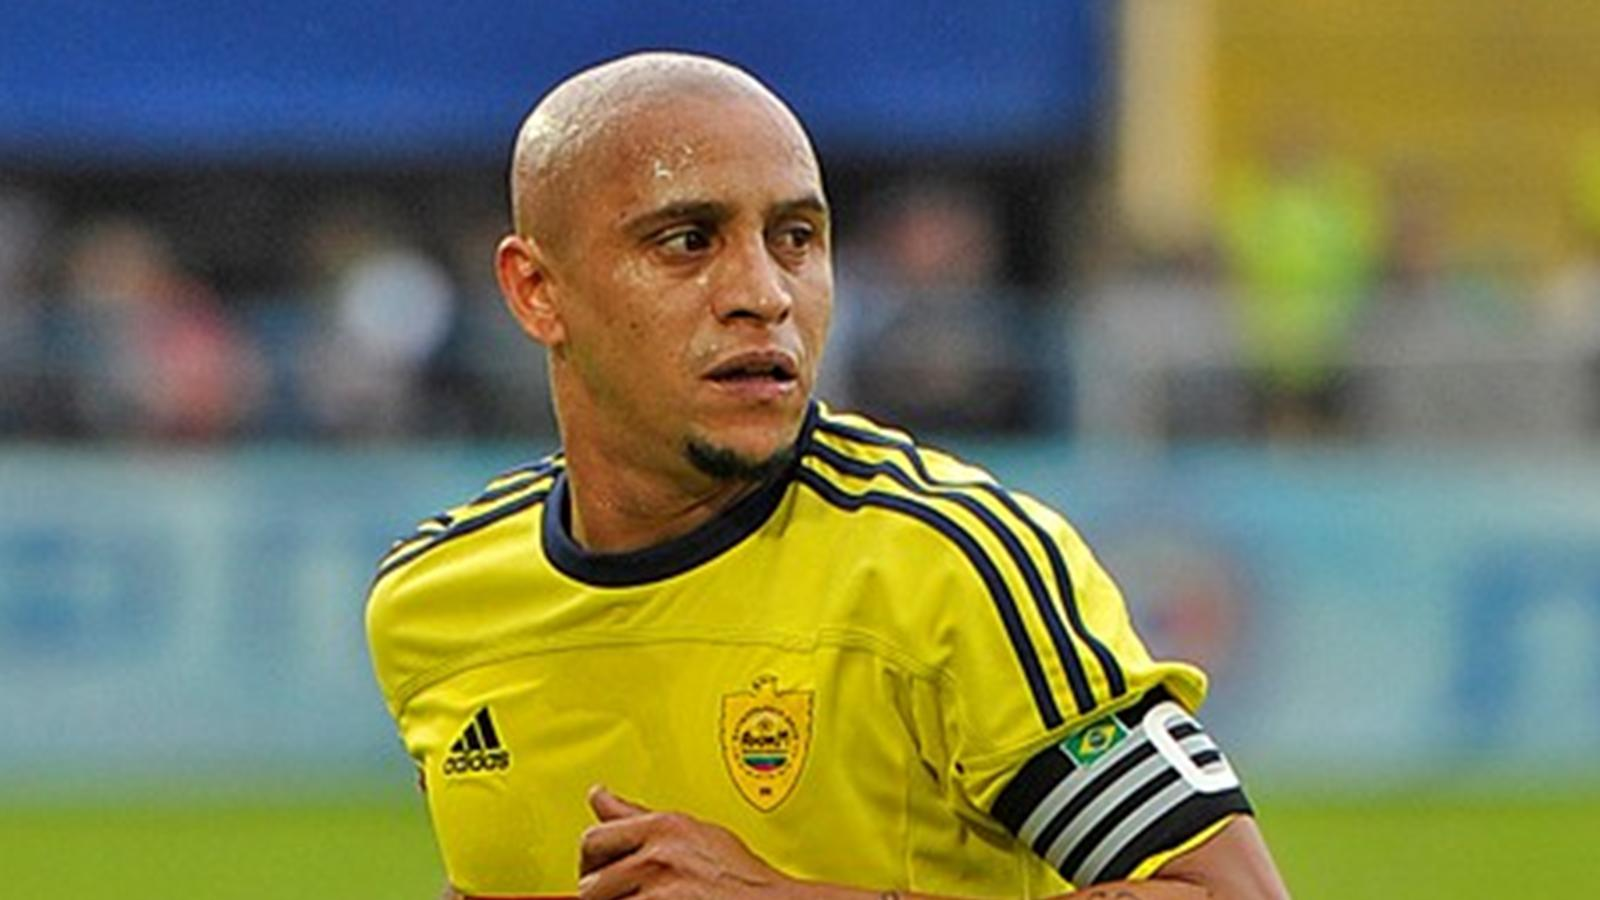 Roberto carlos anzhi fc anji ru from official website